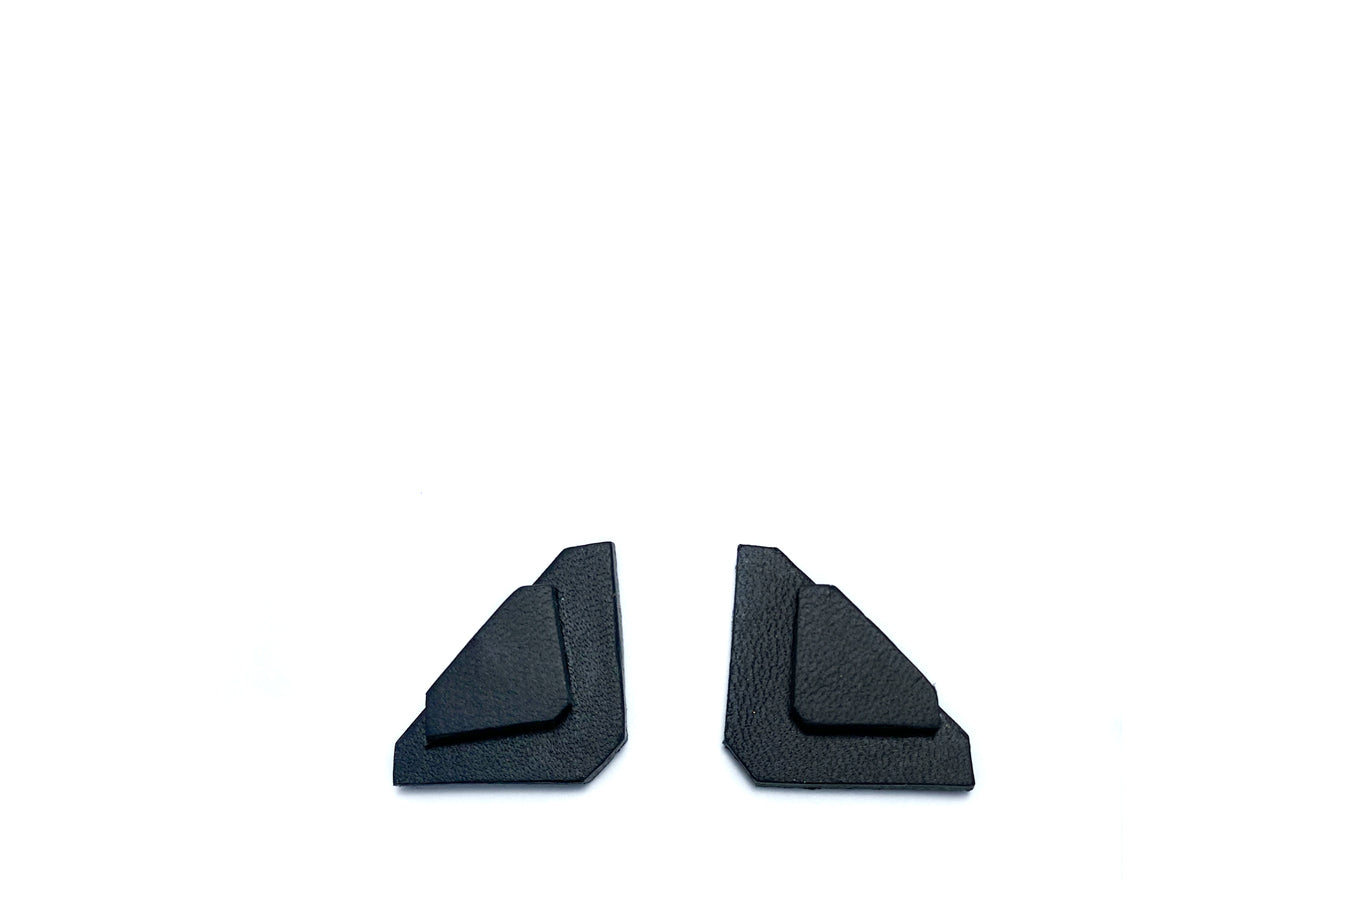 Black Asci Earrings